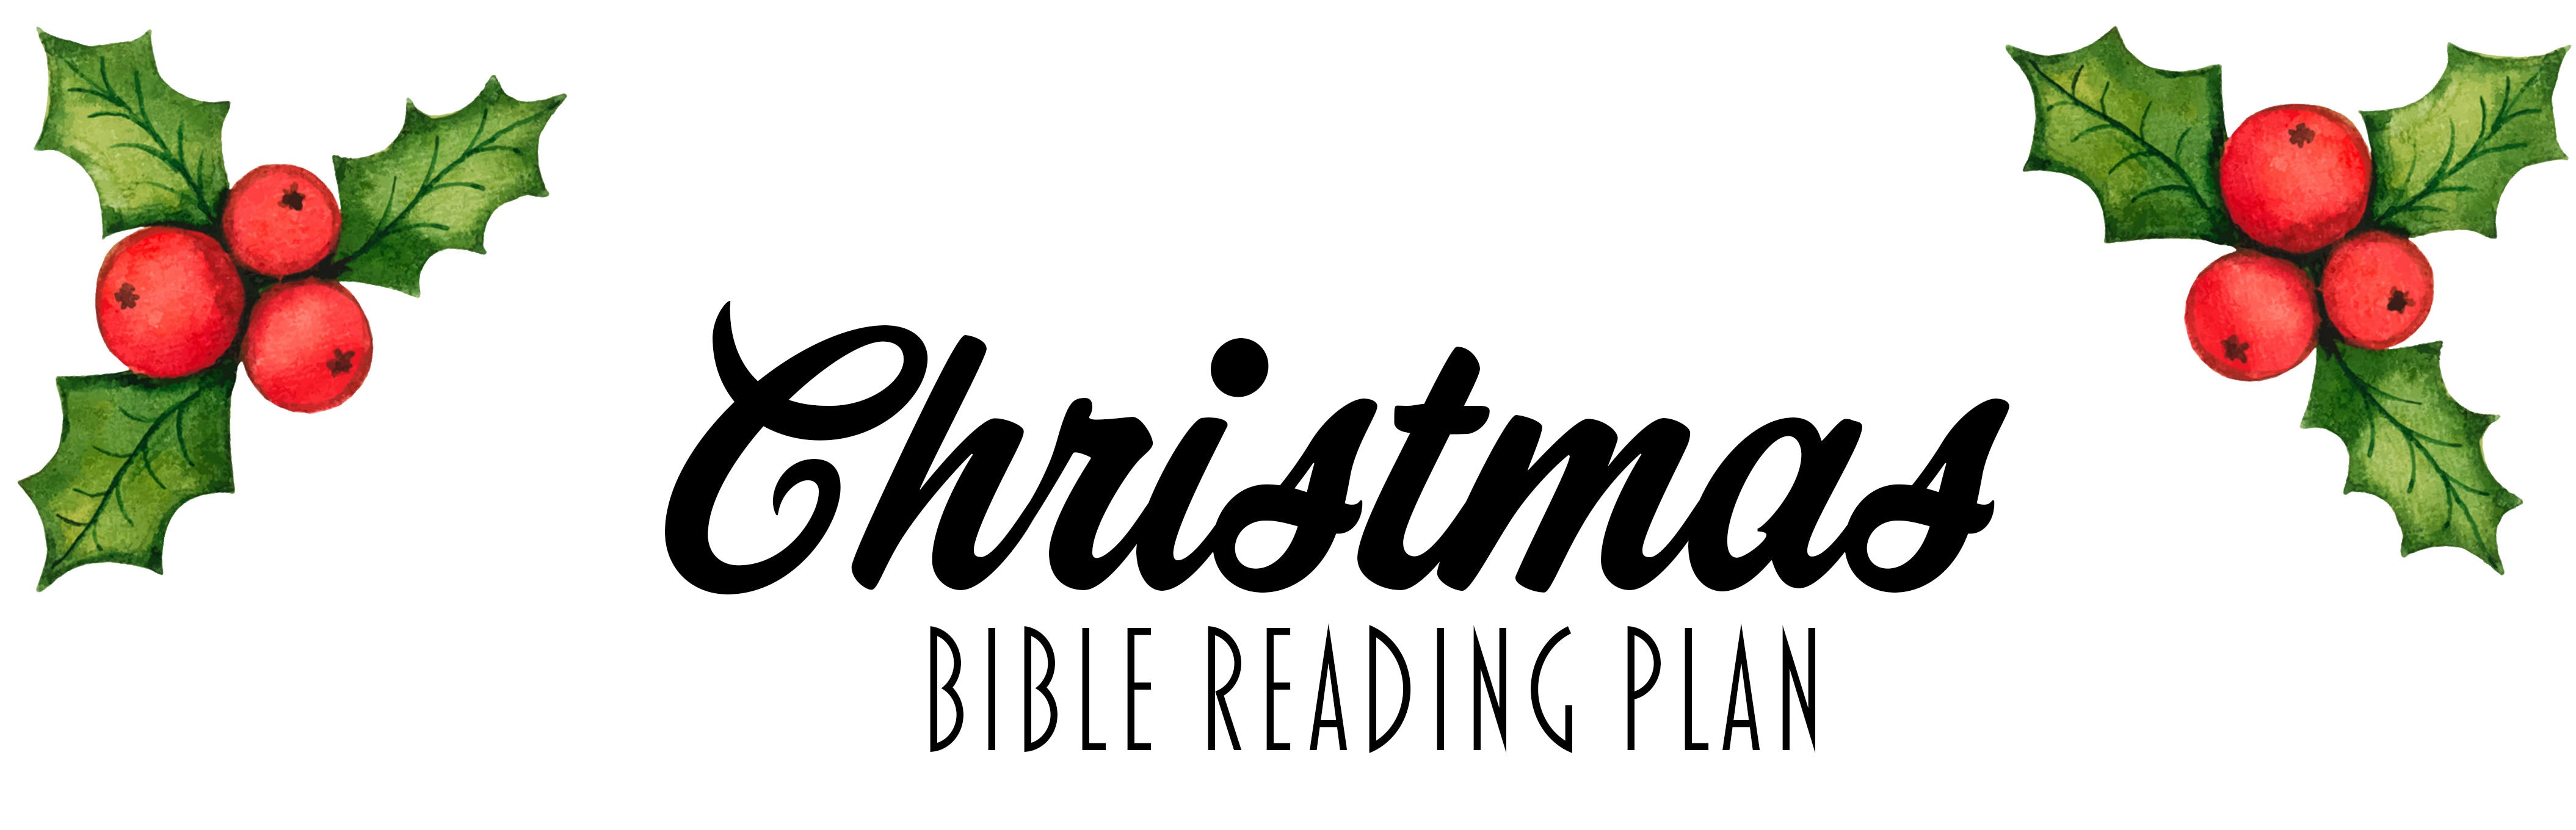 2018 Christmas Reading Plan - Bibles and Coffee